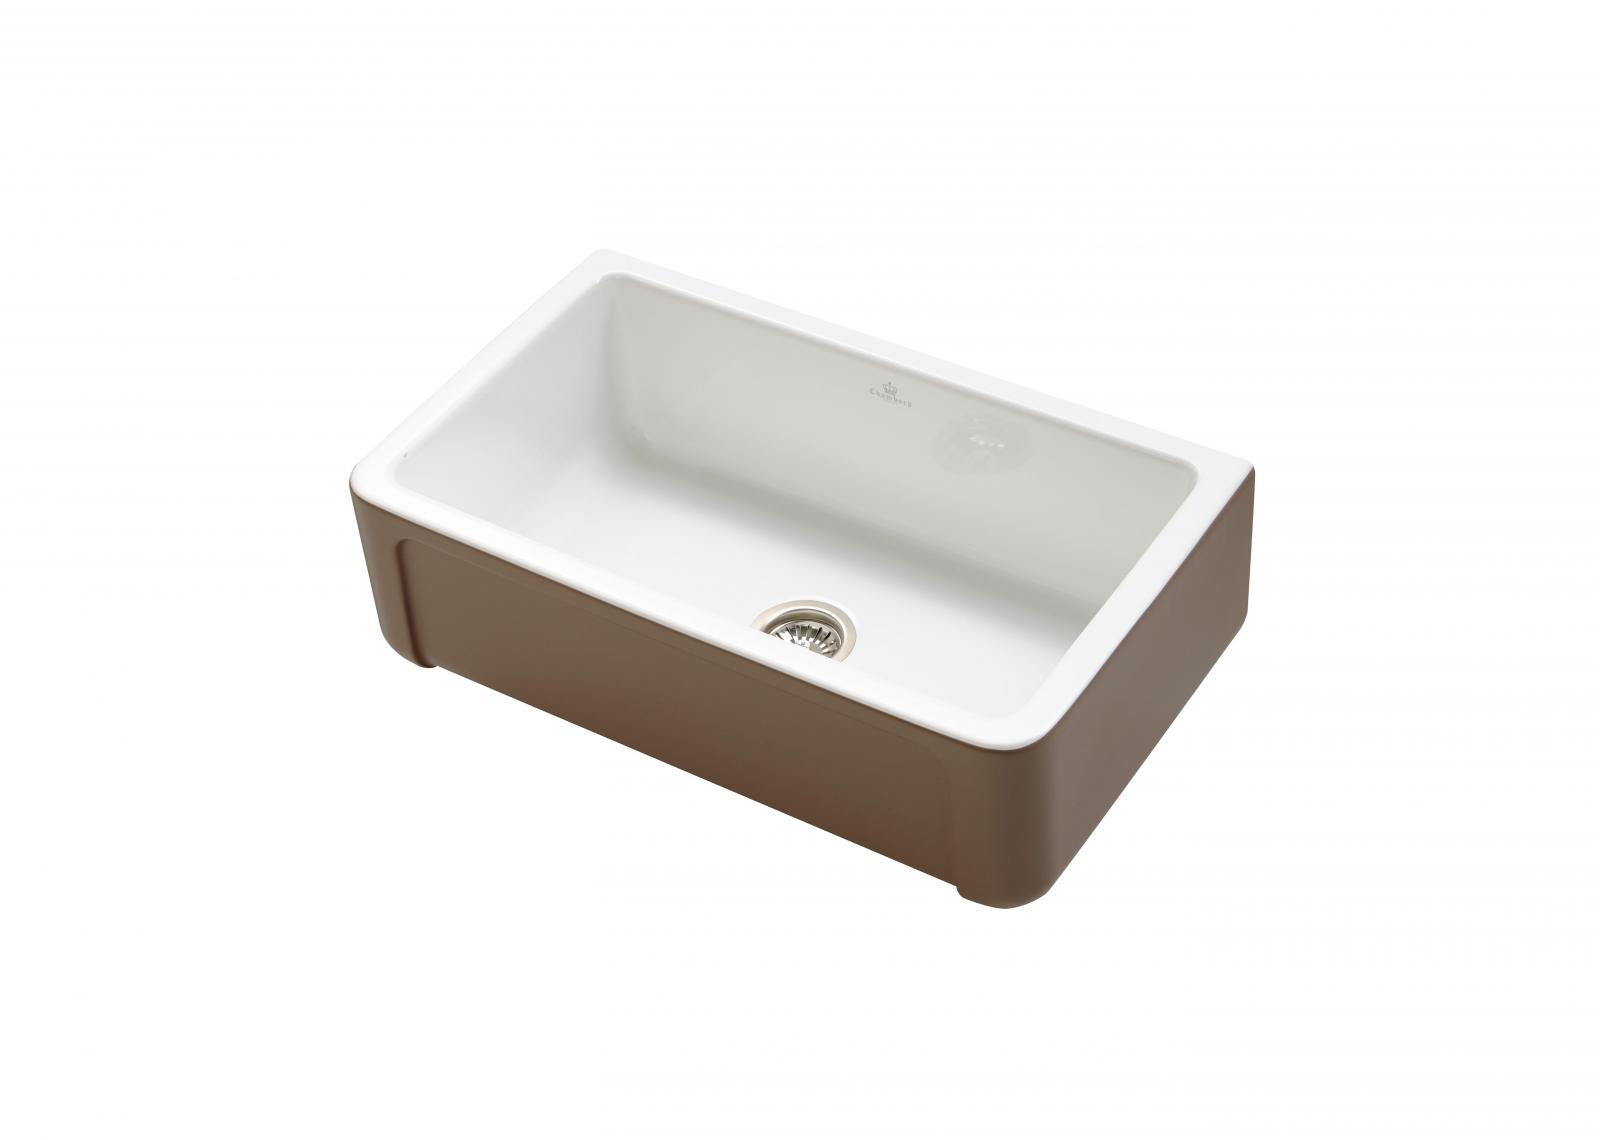 High-quality sink Henri II Le Grand Taupe - single bowl, ceramic ambience